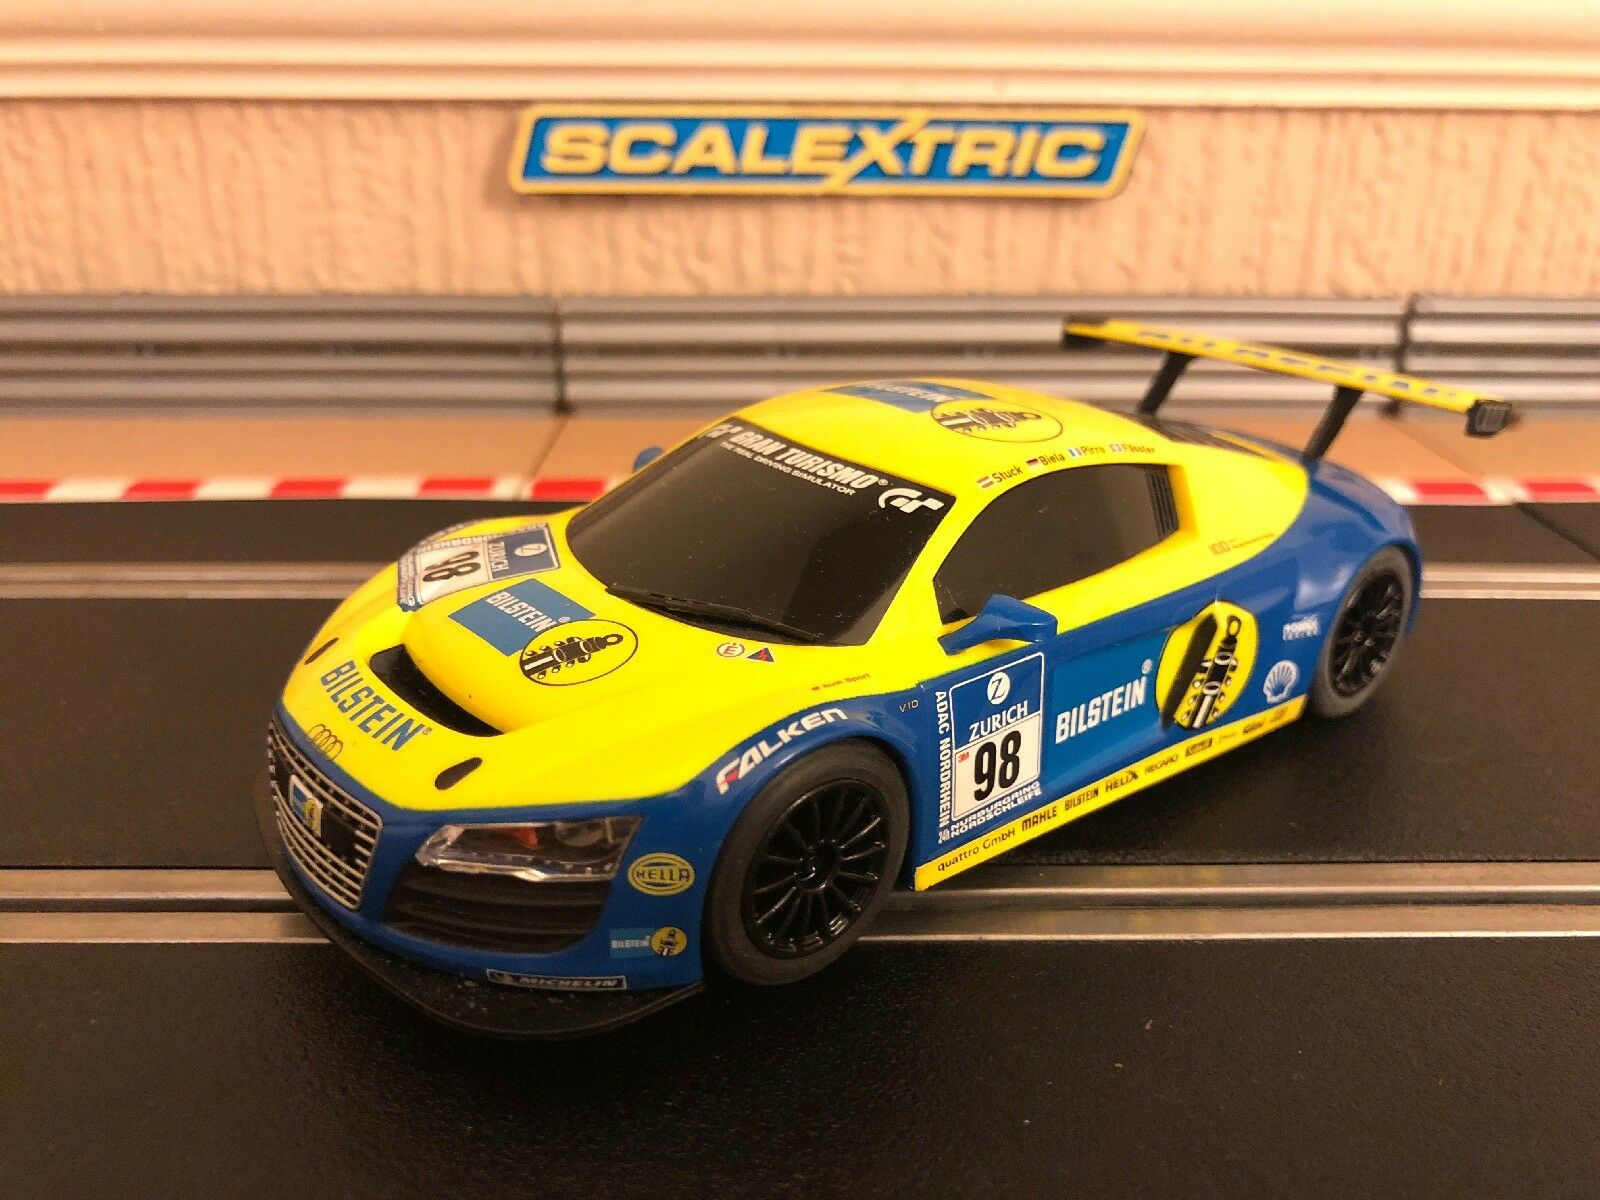 Scalextric Digital Audi R8 LMS GT3 'Bilstein' No98 C3045 Mint Condition